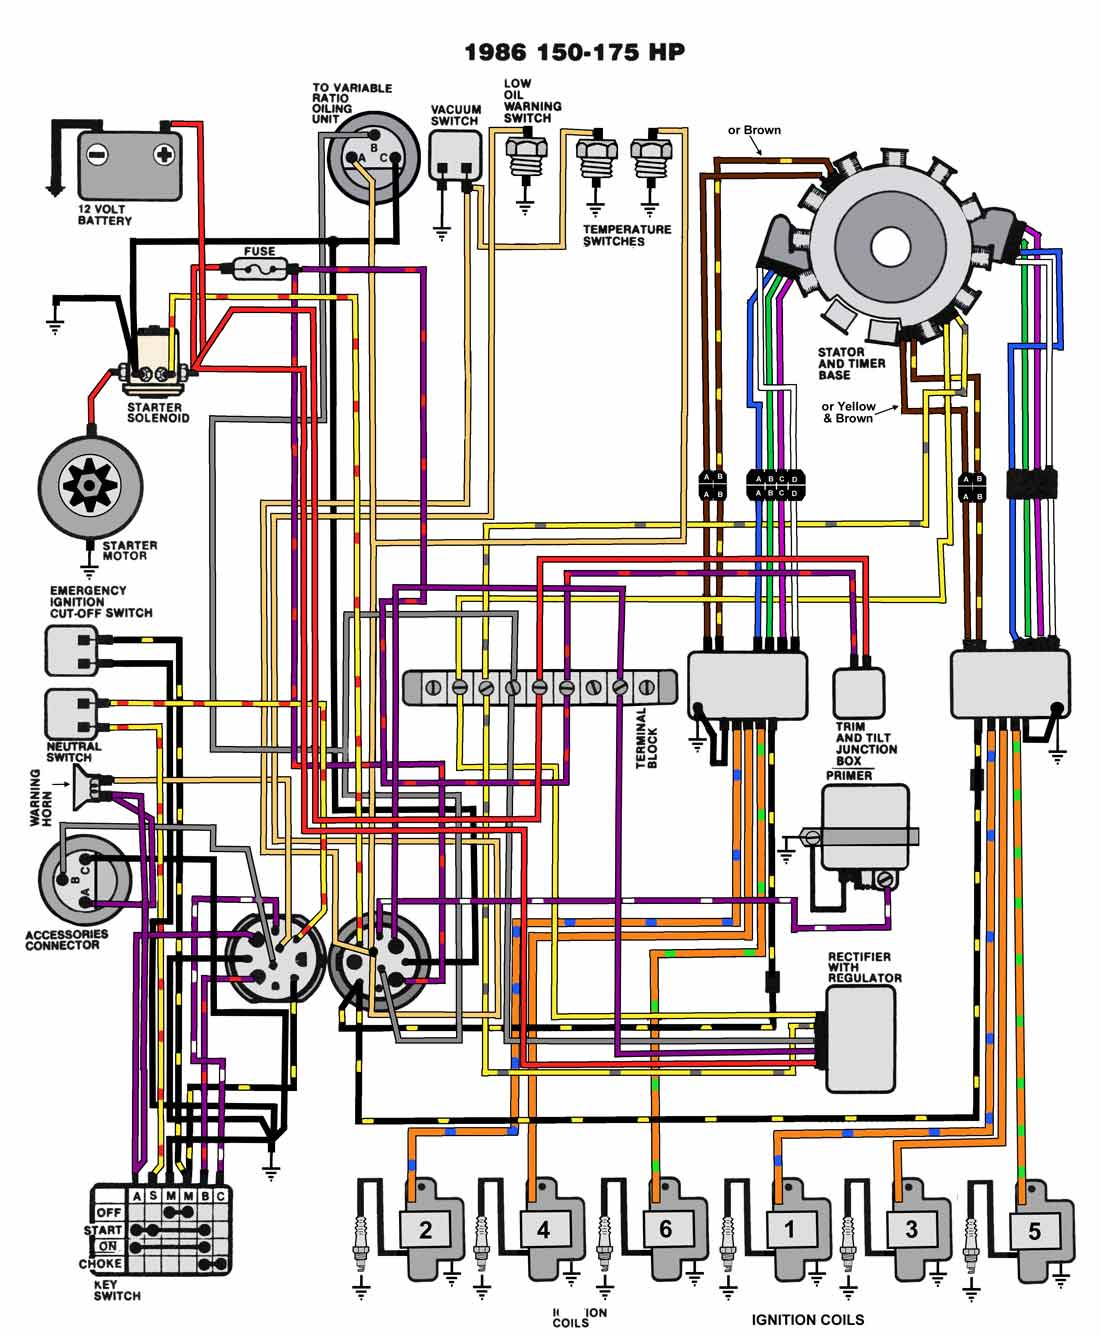 1986_150_175 mastertech marine evinrude johnson outboard wiring diagrams OMC Inboard Outboard Wiring Diagrams at edmiracle.co